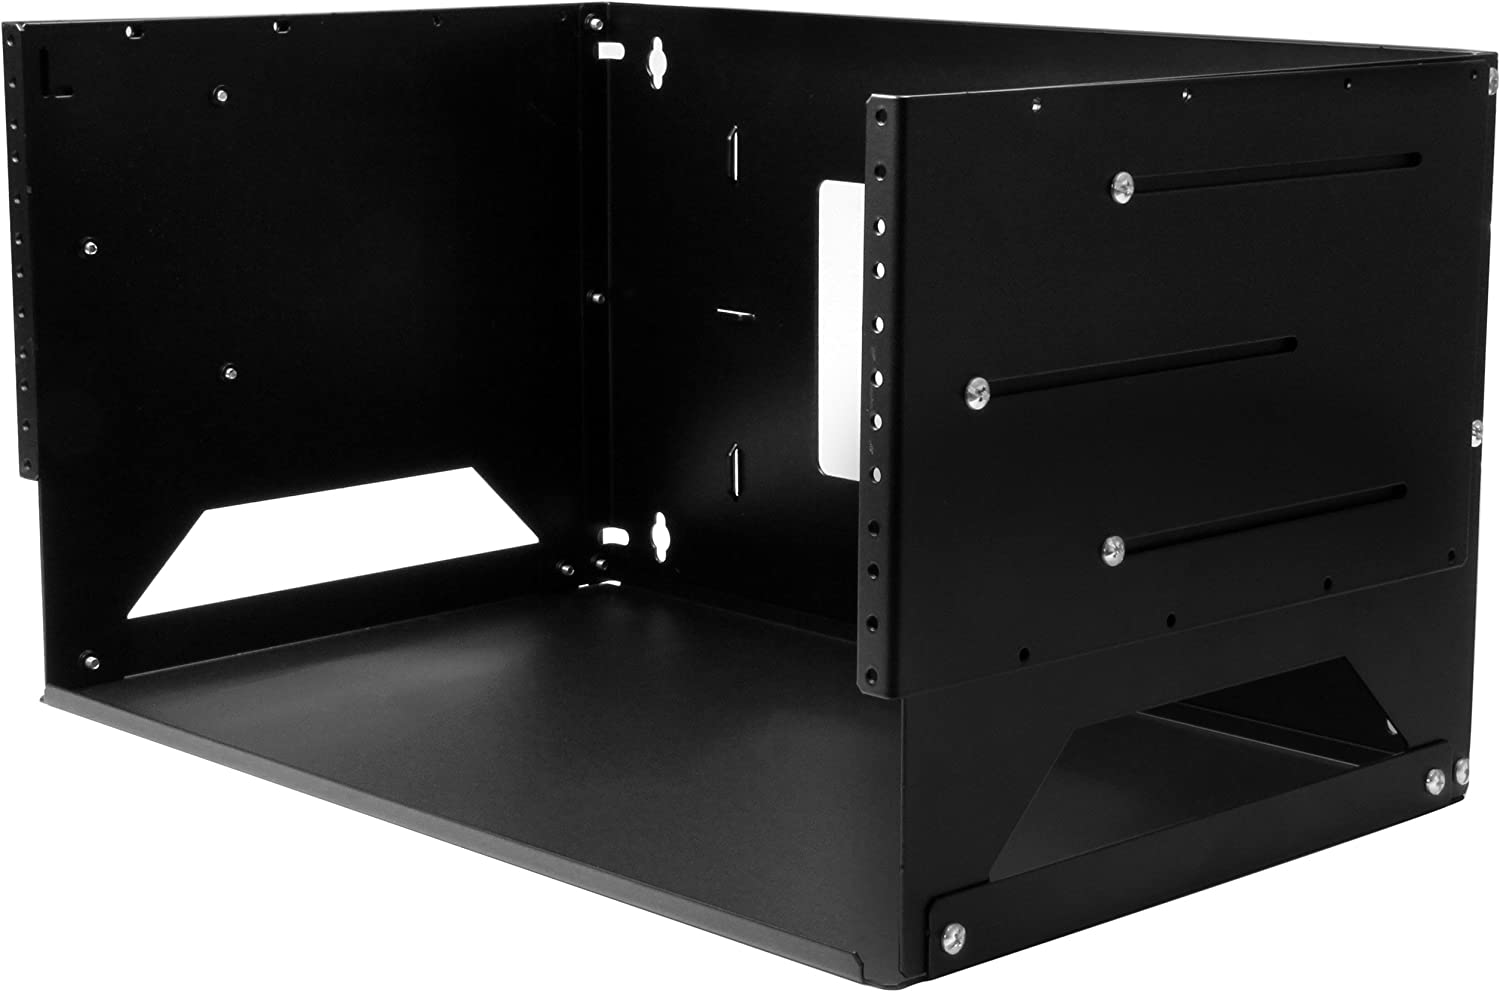 "StarTech.com 4U Open Frame Wall Mount Network Rack w/ Built in Shelf - 2-Post Adjustable Depth (12"" to 18"") Equipment Rack - 75.2lbs (WALLSHELF4U)"